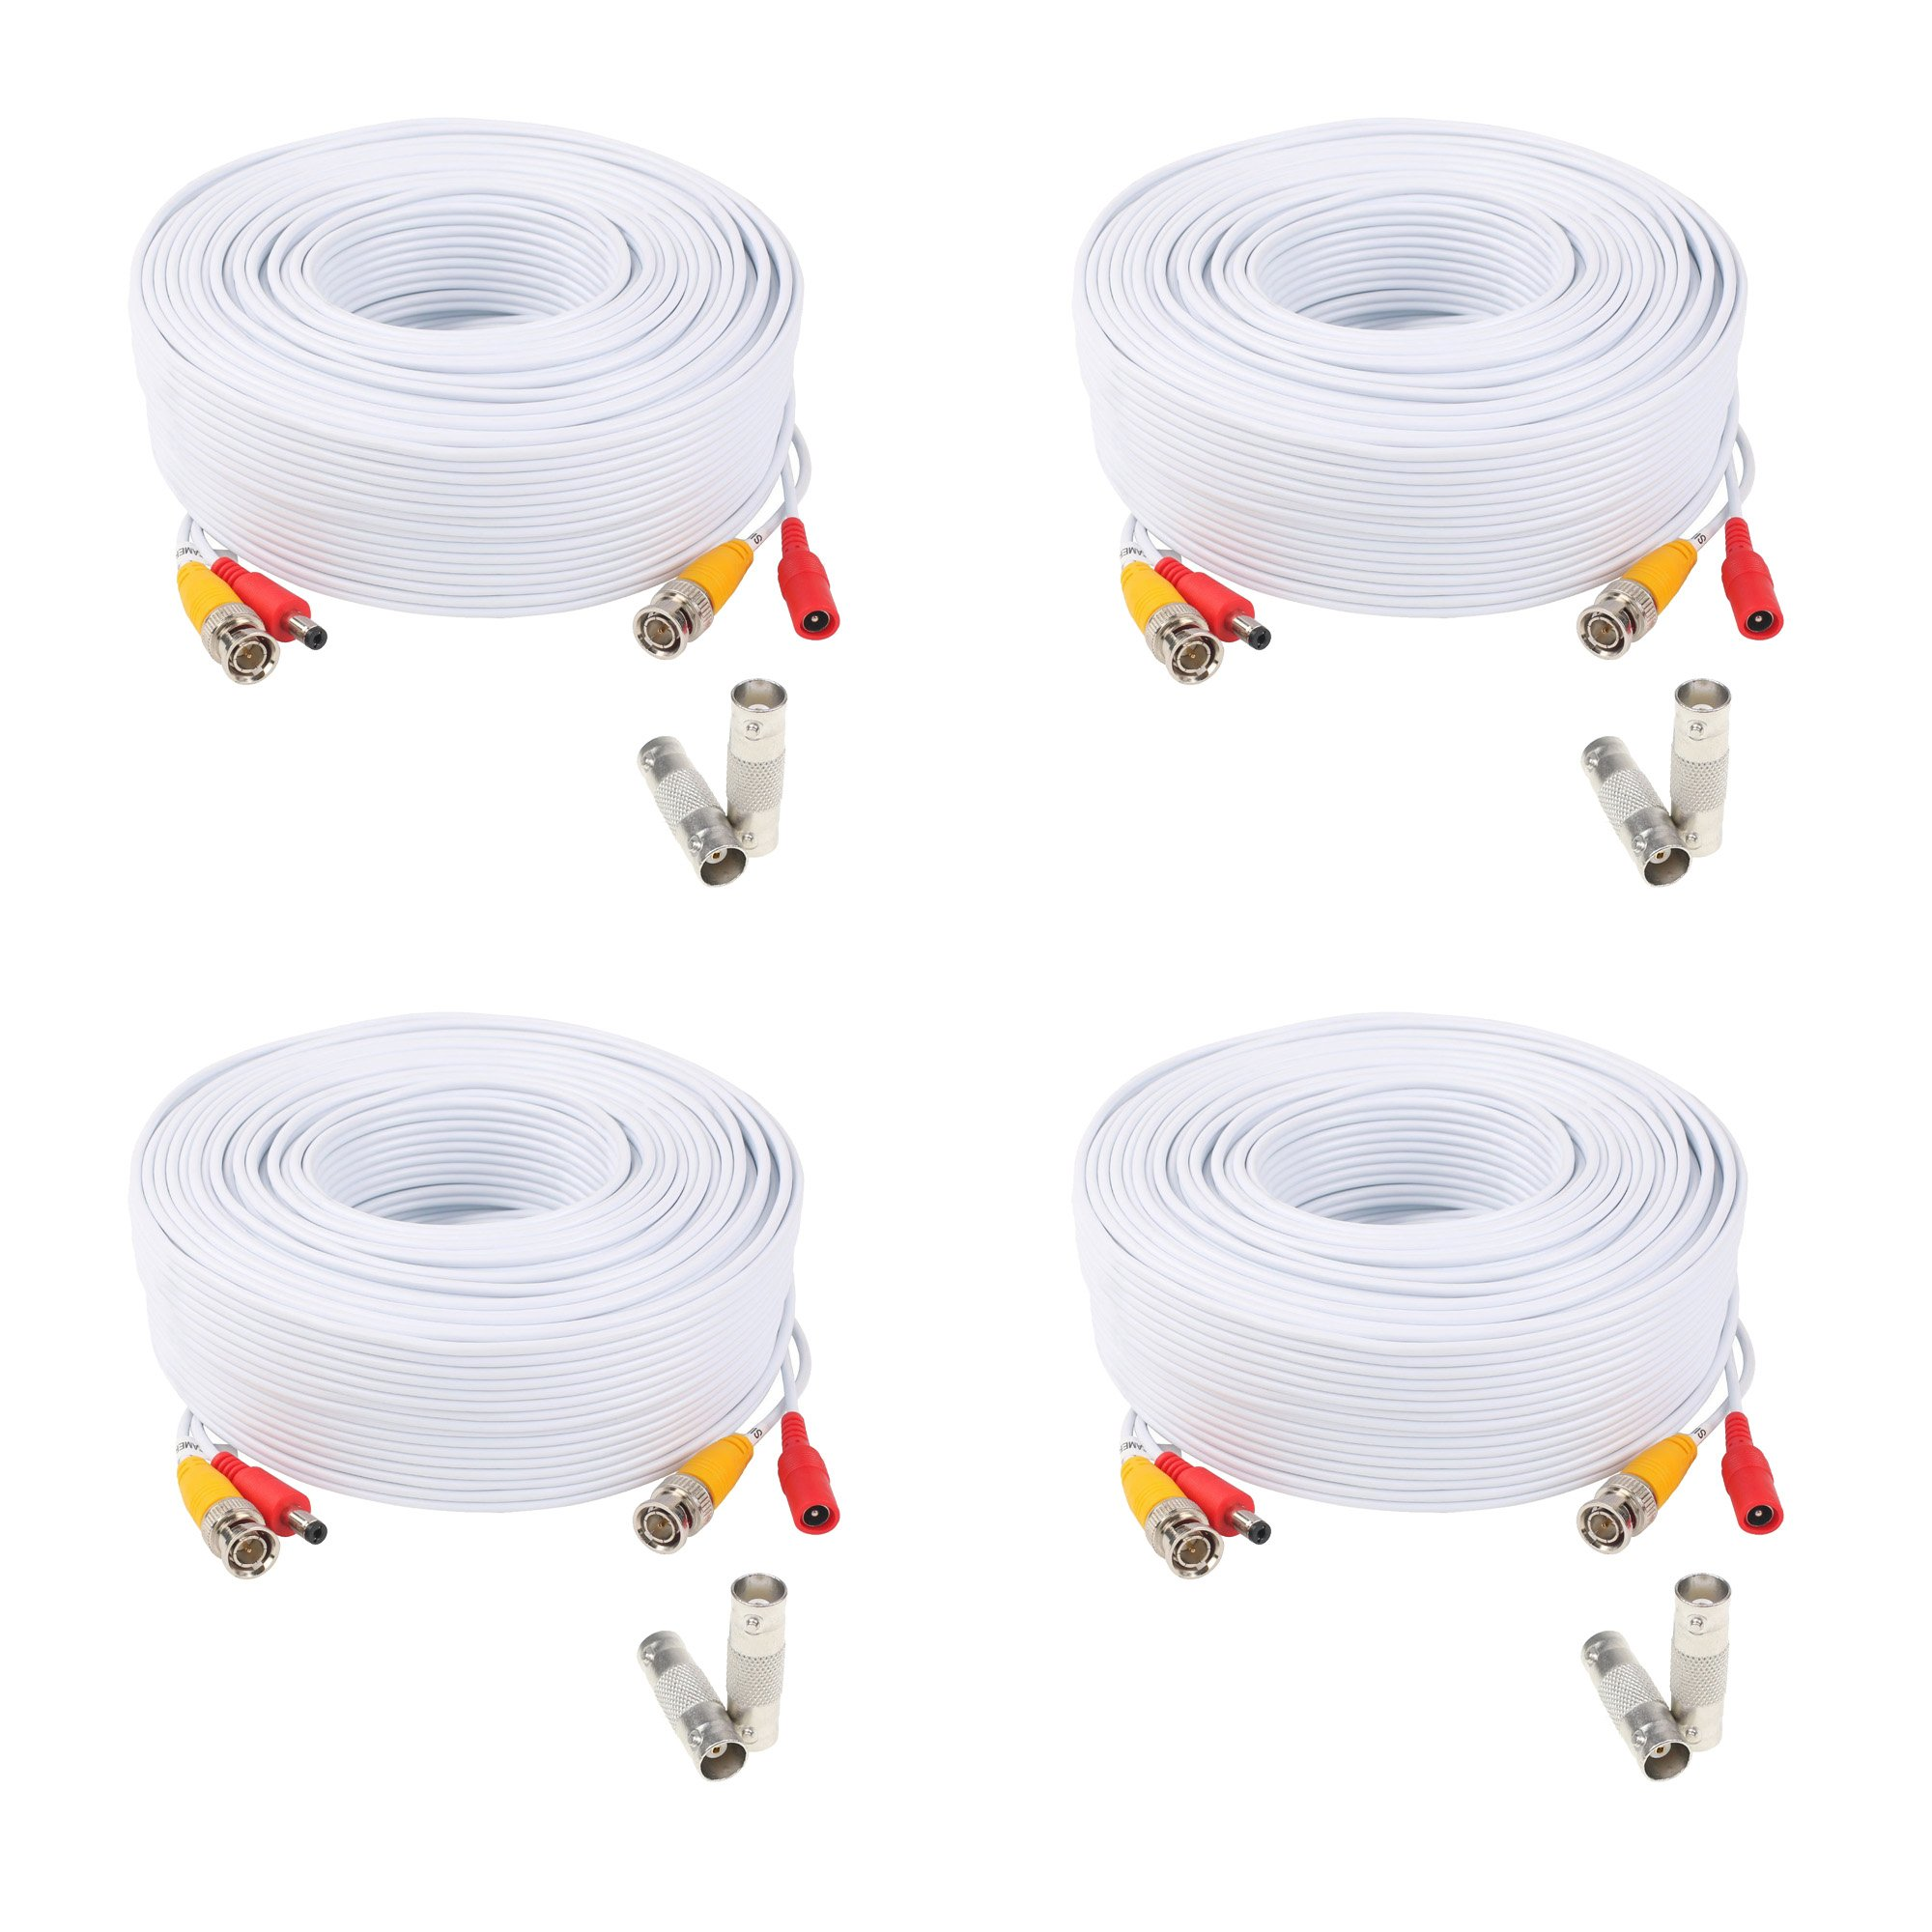 (4) 200ft Pre-Made All-in-One Siamese BNC Video and Power Cable Wire Cord with BNC Extension Connectors for CCTV Security Camera & DVR (4 Pack, 200 Feet, White)